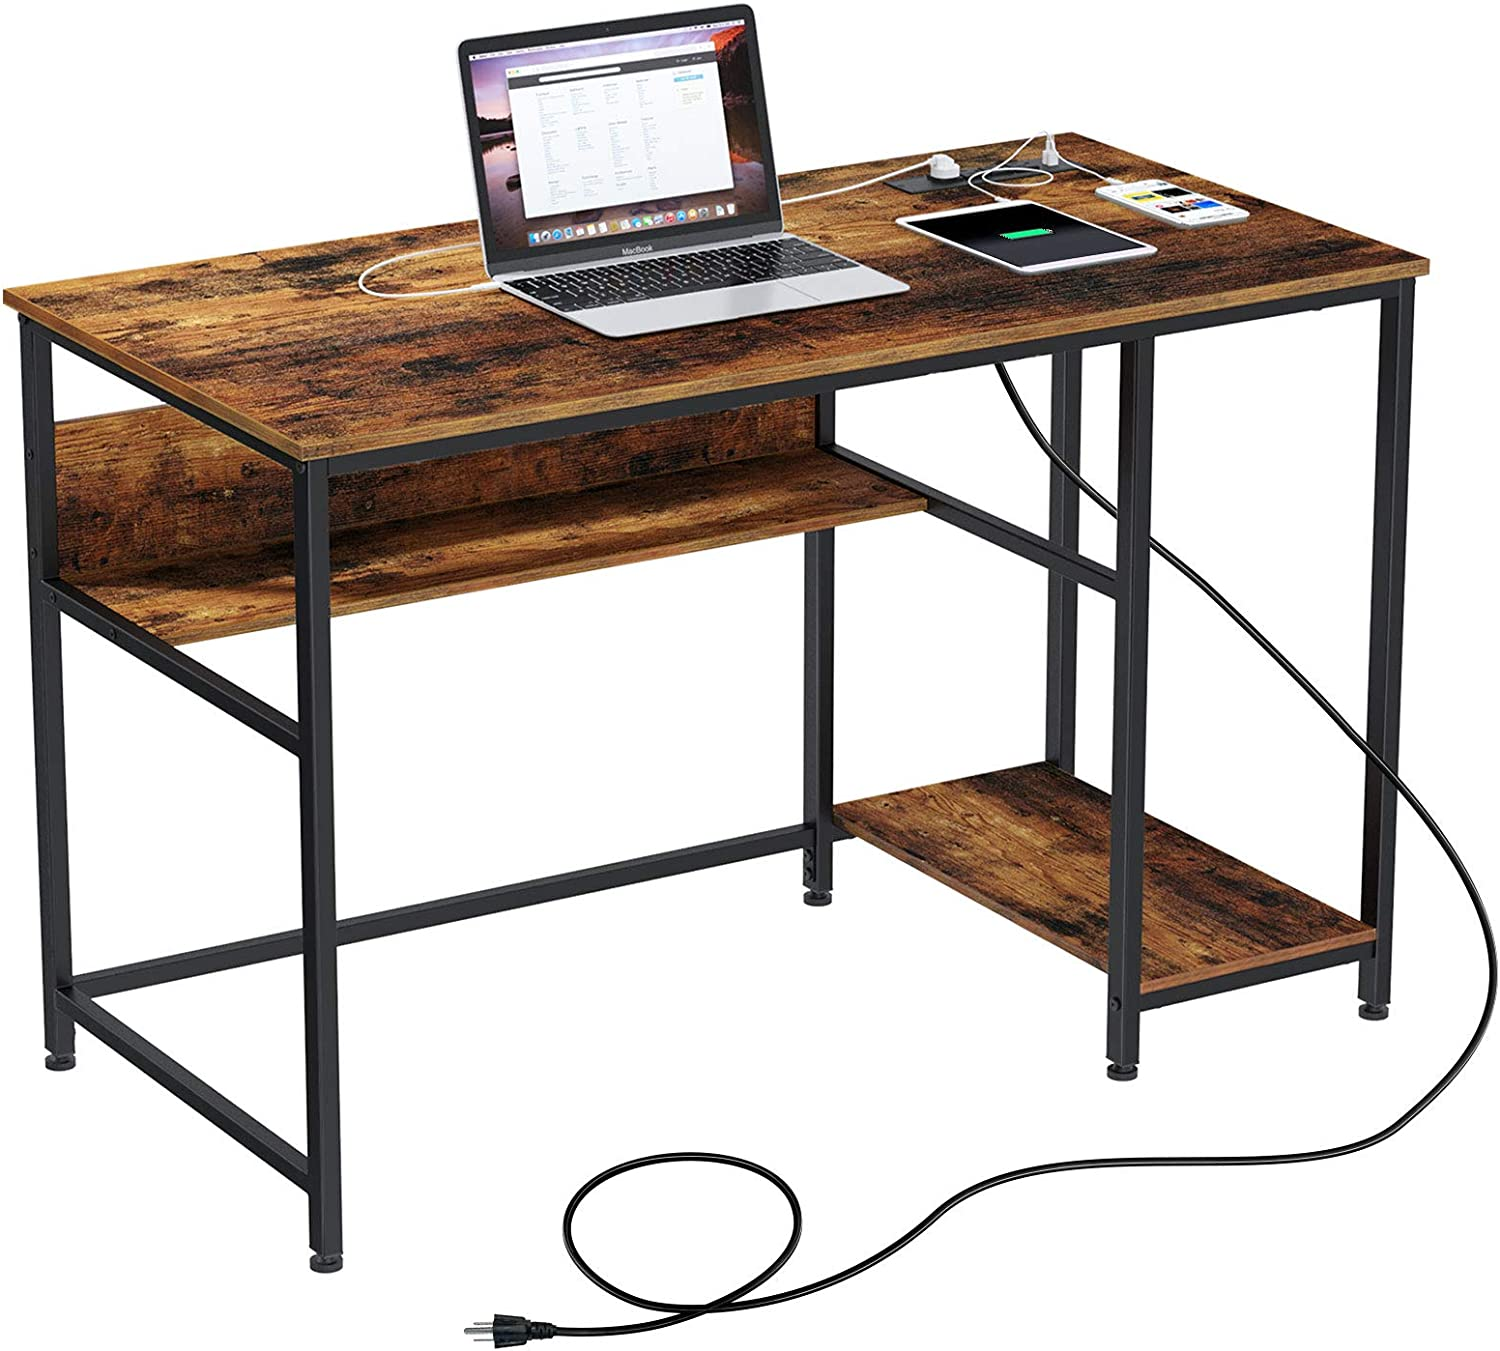 """Rolanstar Computer Desk with Power Outlets, 47""""/55"""" Office Desk with 2 Storage Shelves with Corner Protectors, Study Table, Workstation,Business Style, Stable Metal Frame, RTB00D-YE140-1"""